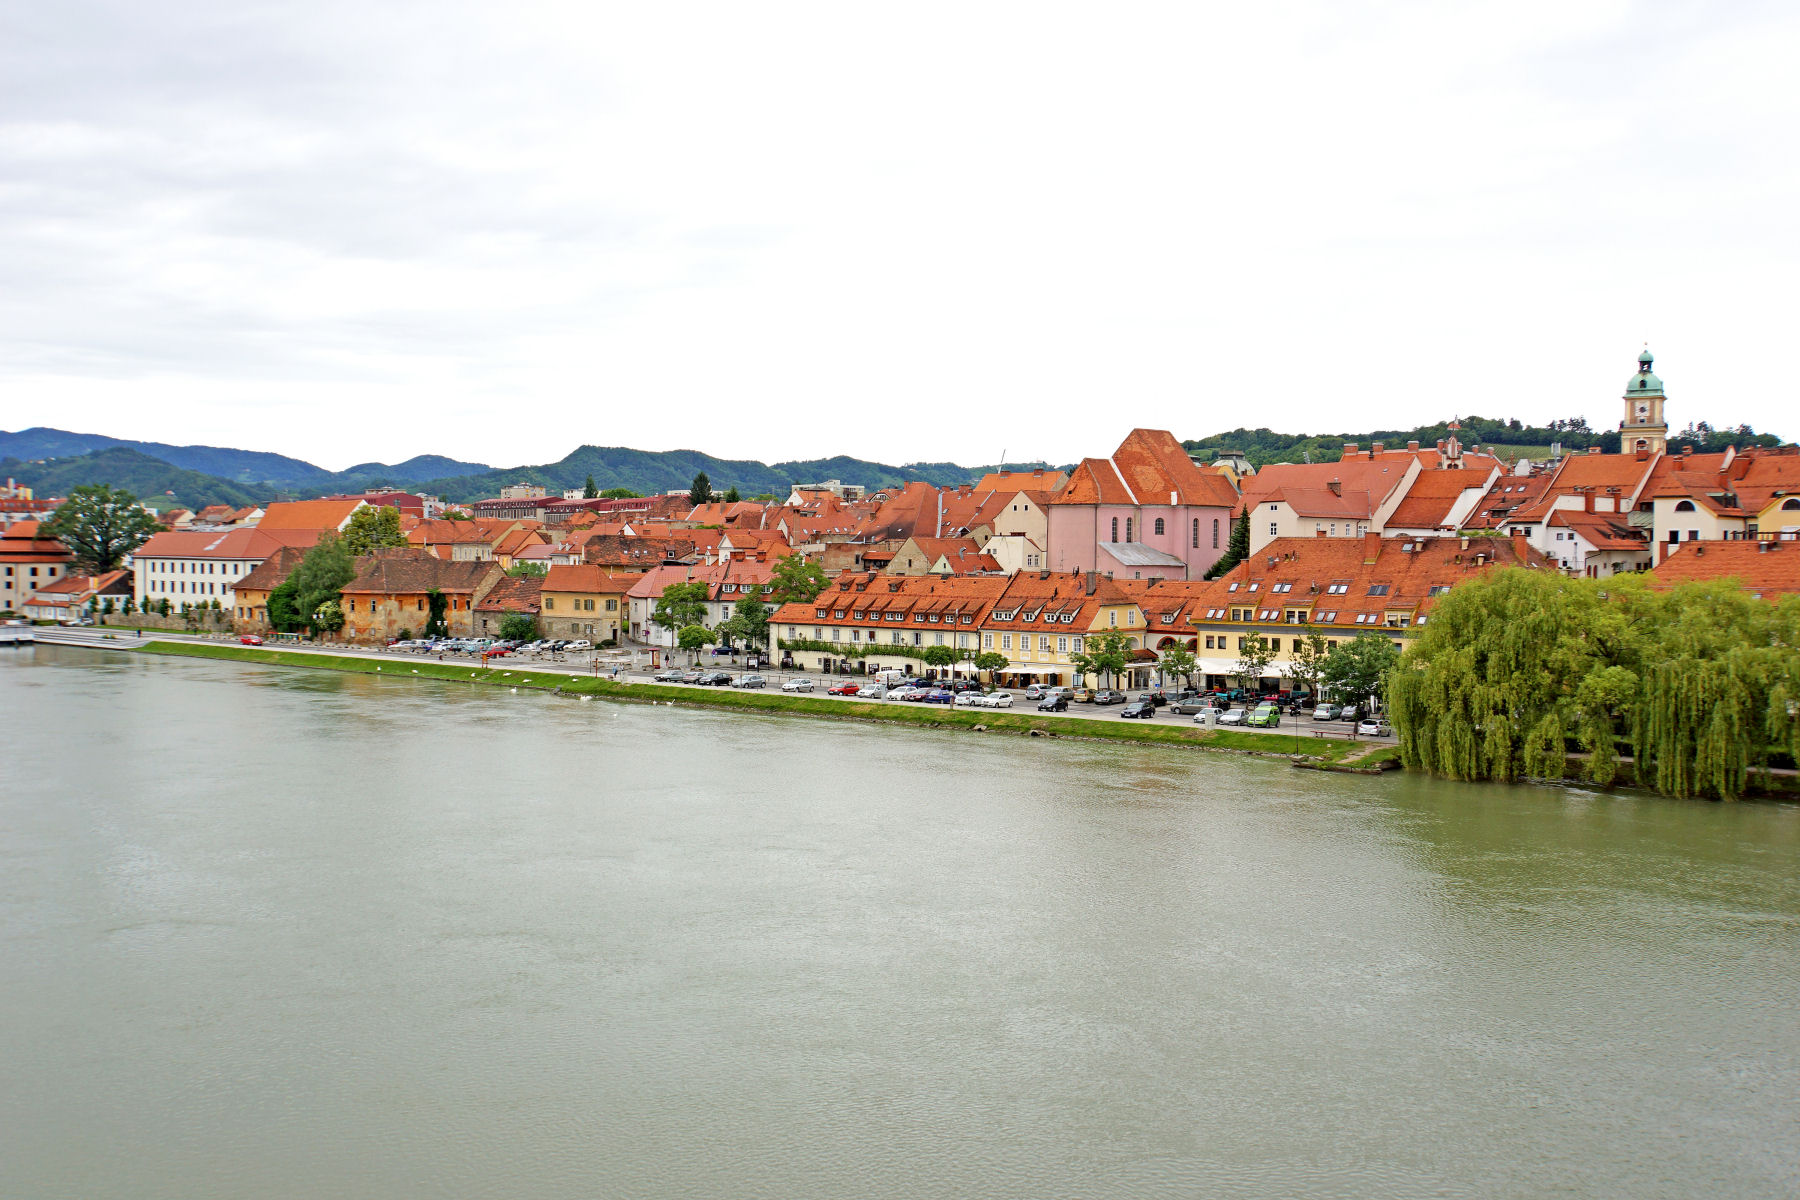 The beautiful  Old Town of Maribor along the Drava River in Slovenia